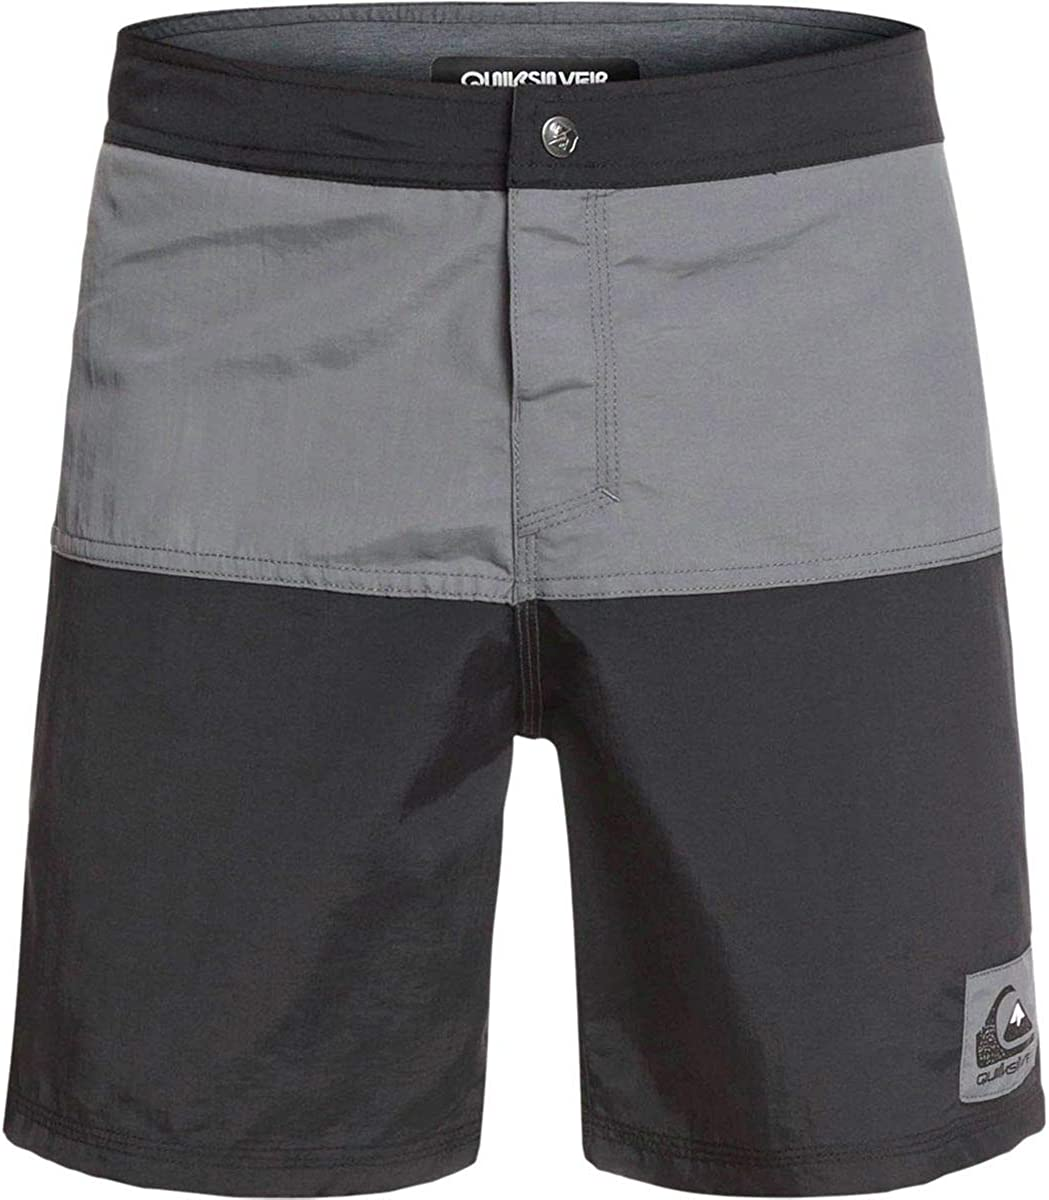 Quiksilver Mens Local Tribe 18 Boardshorts